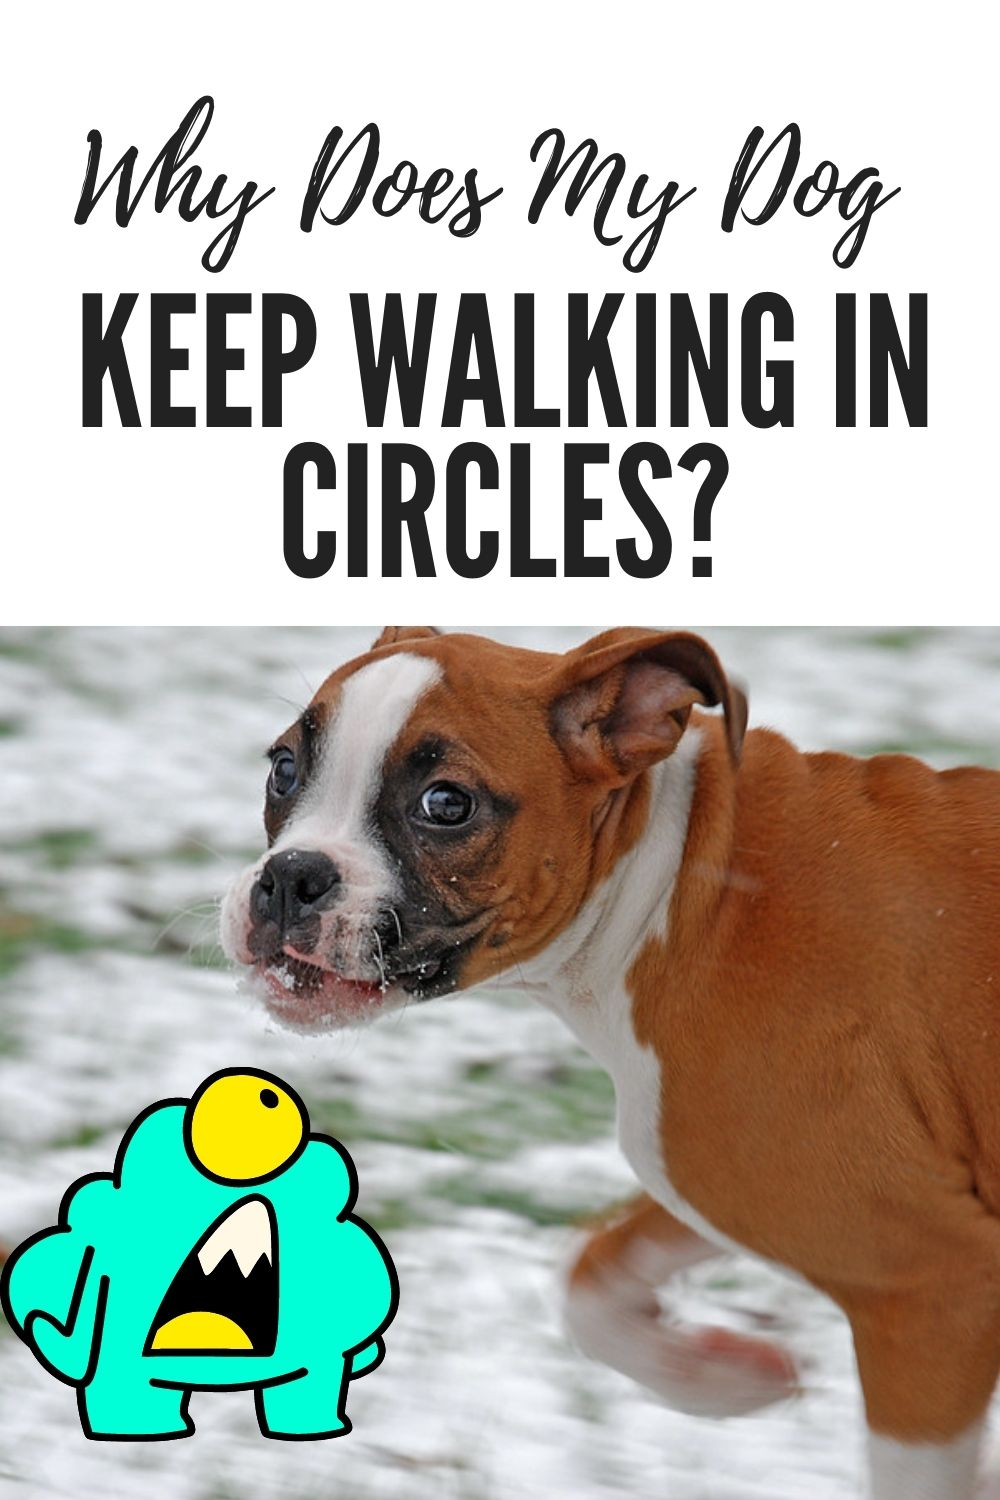 Why Does My Dog Keep Walking in Circles?